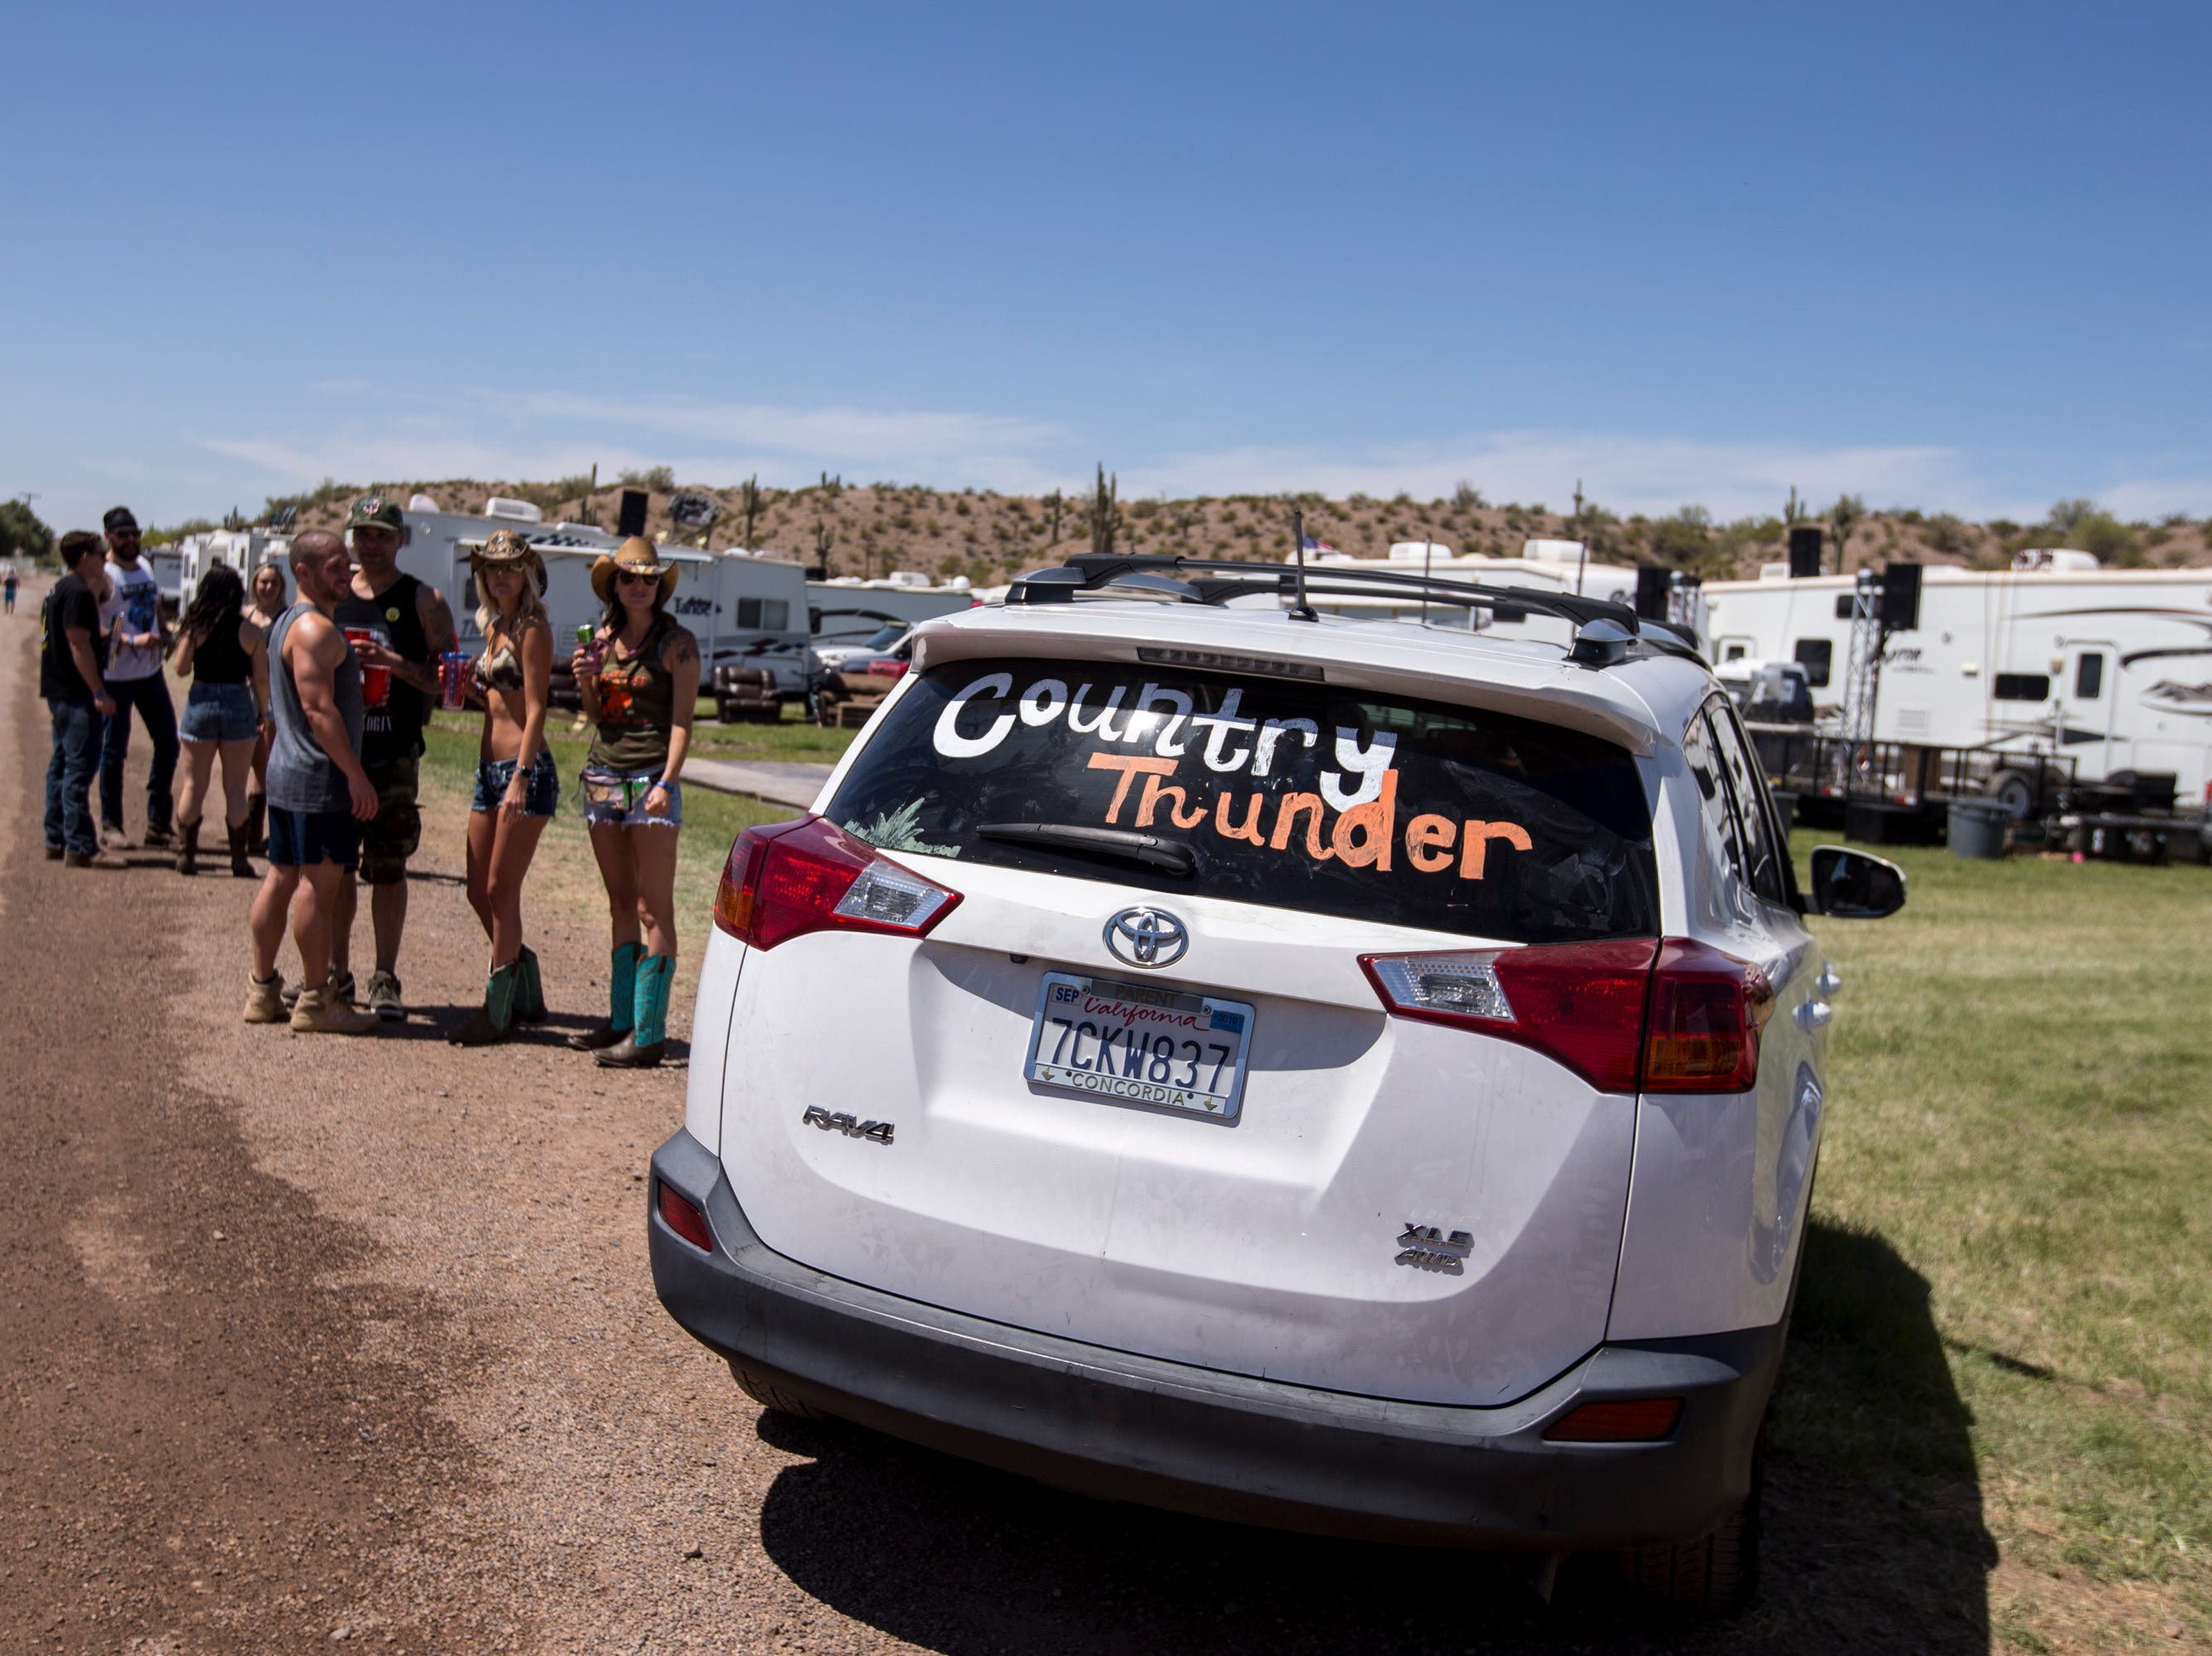 Festival-goers drive into a campsite on April 11, 2019, during Day 1 of Country Thunder Arizona in Florence.